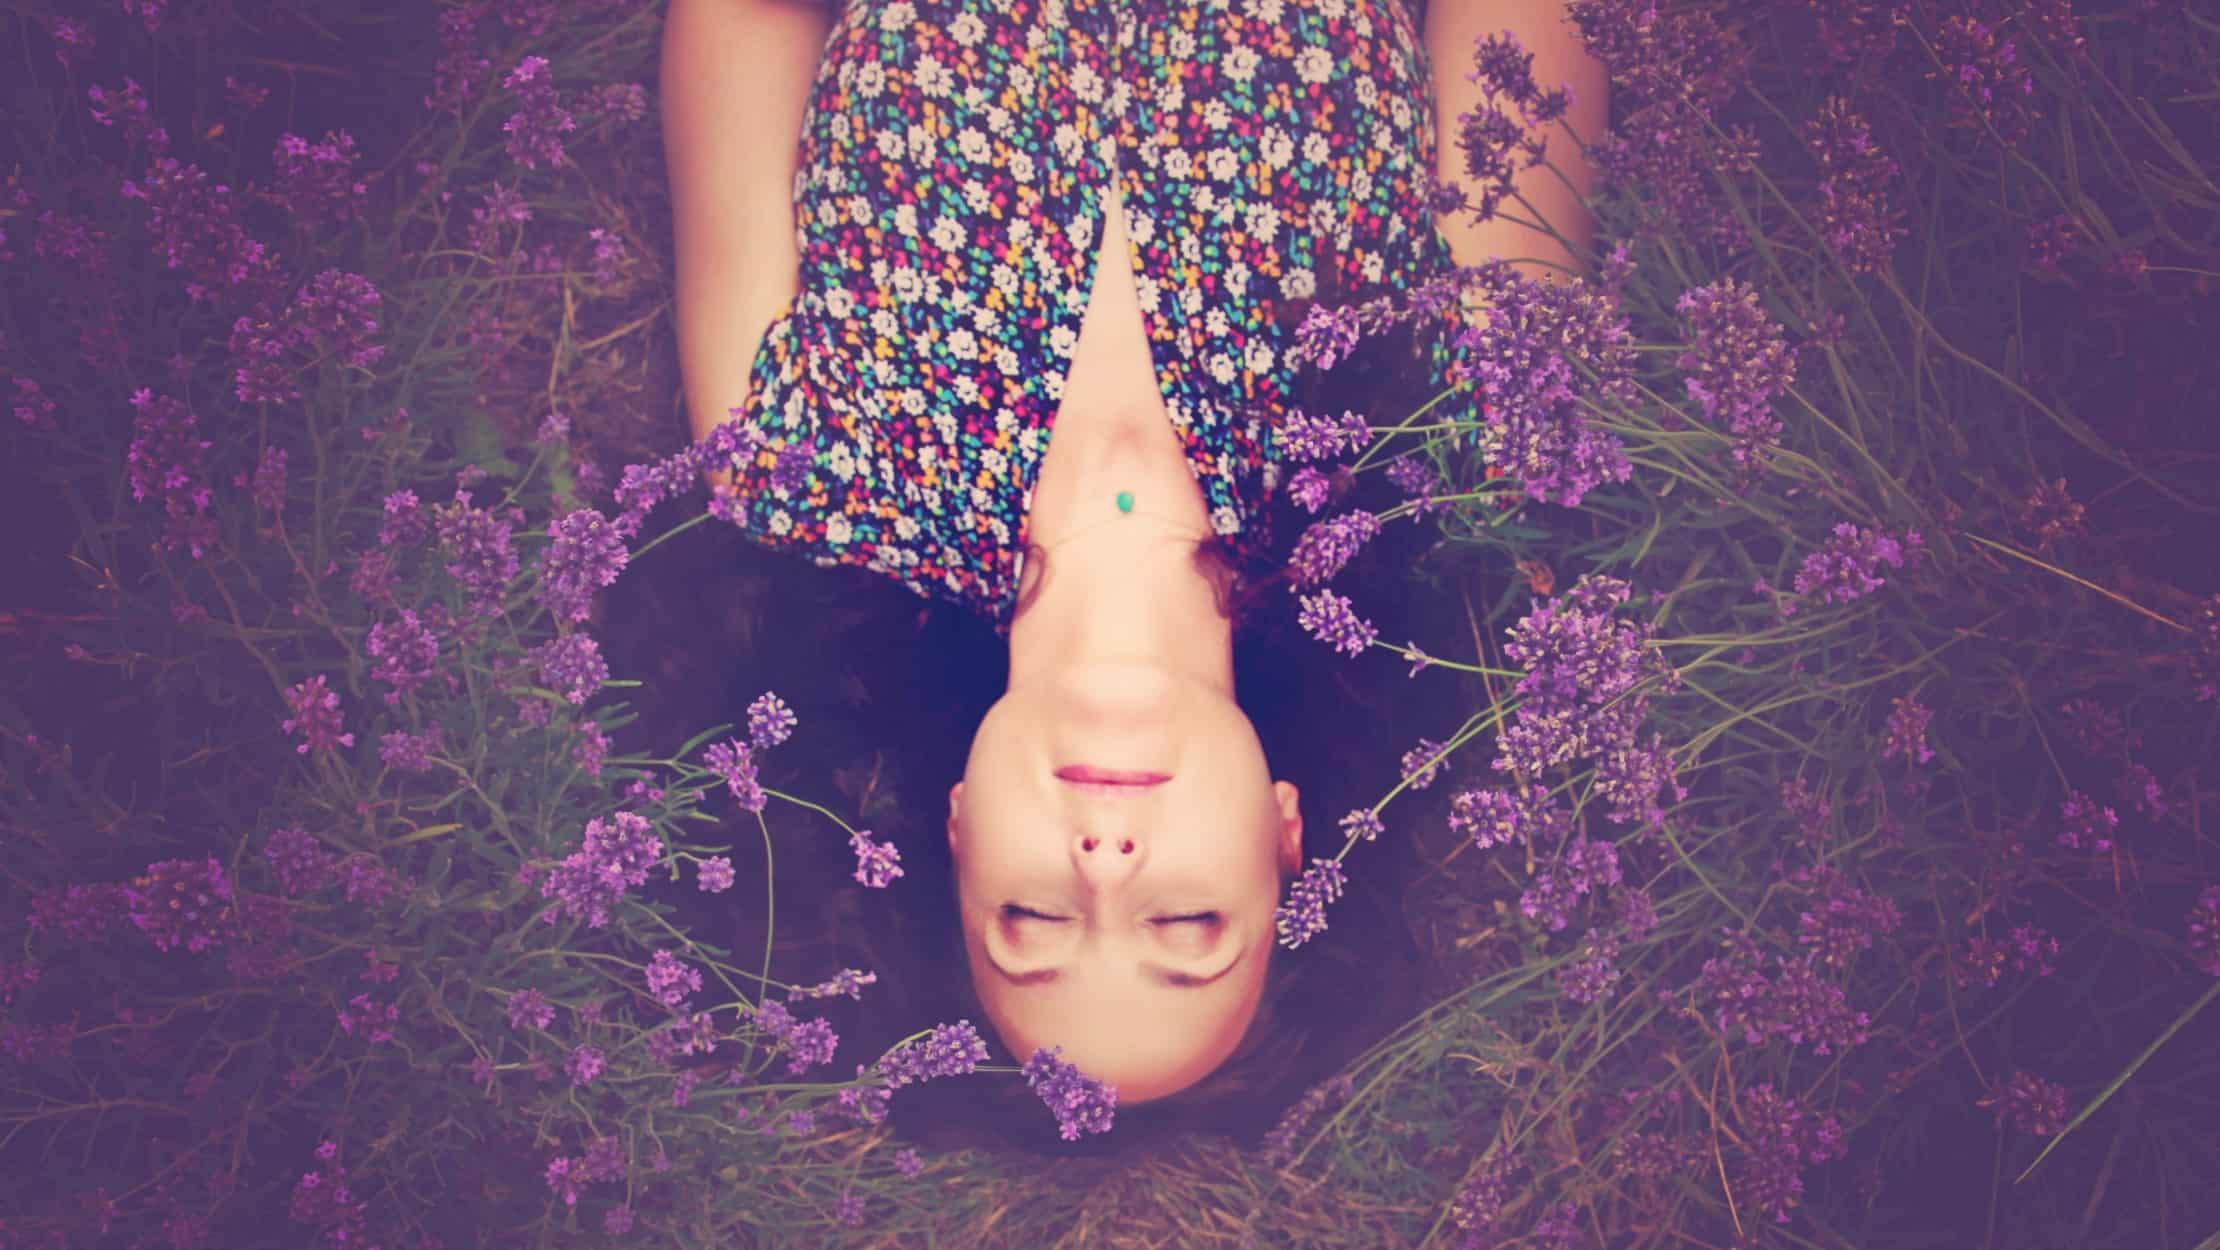 Asleep in a field full of lavender